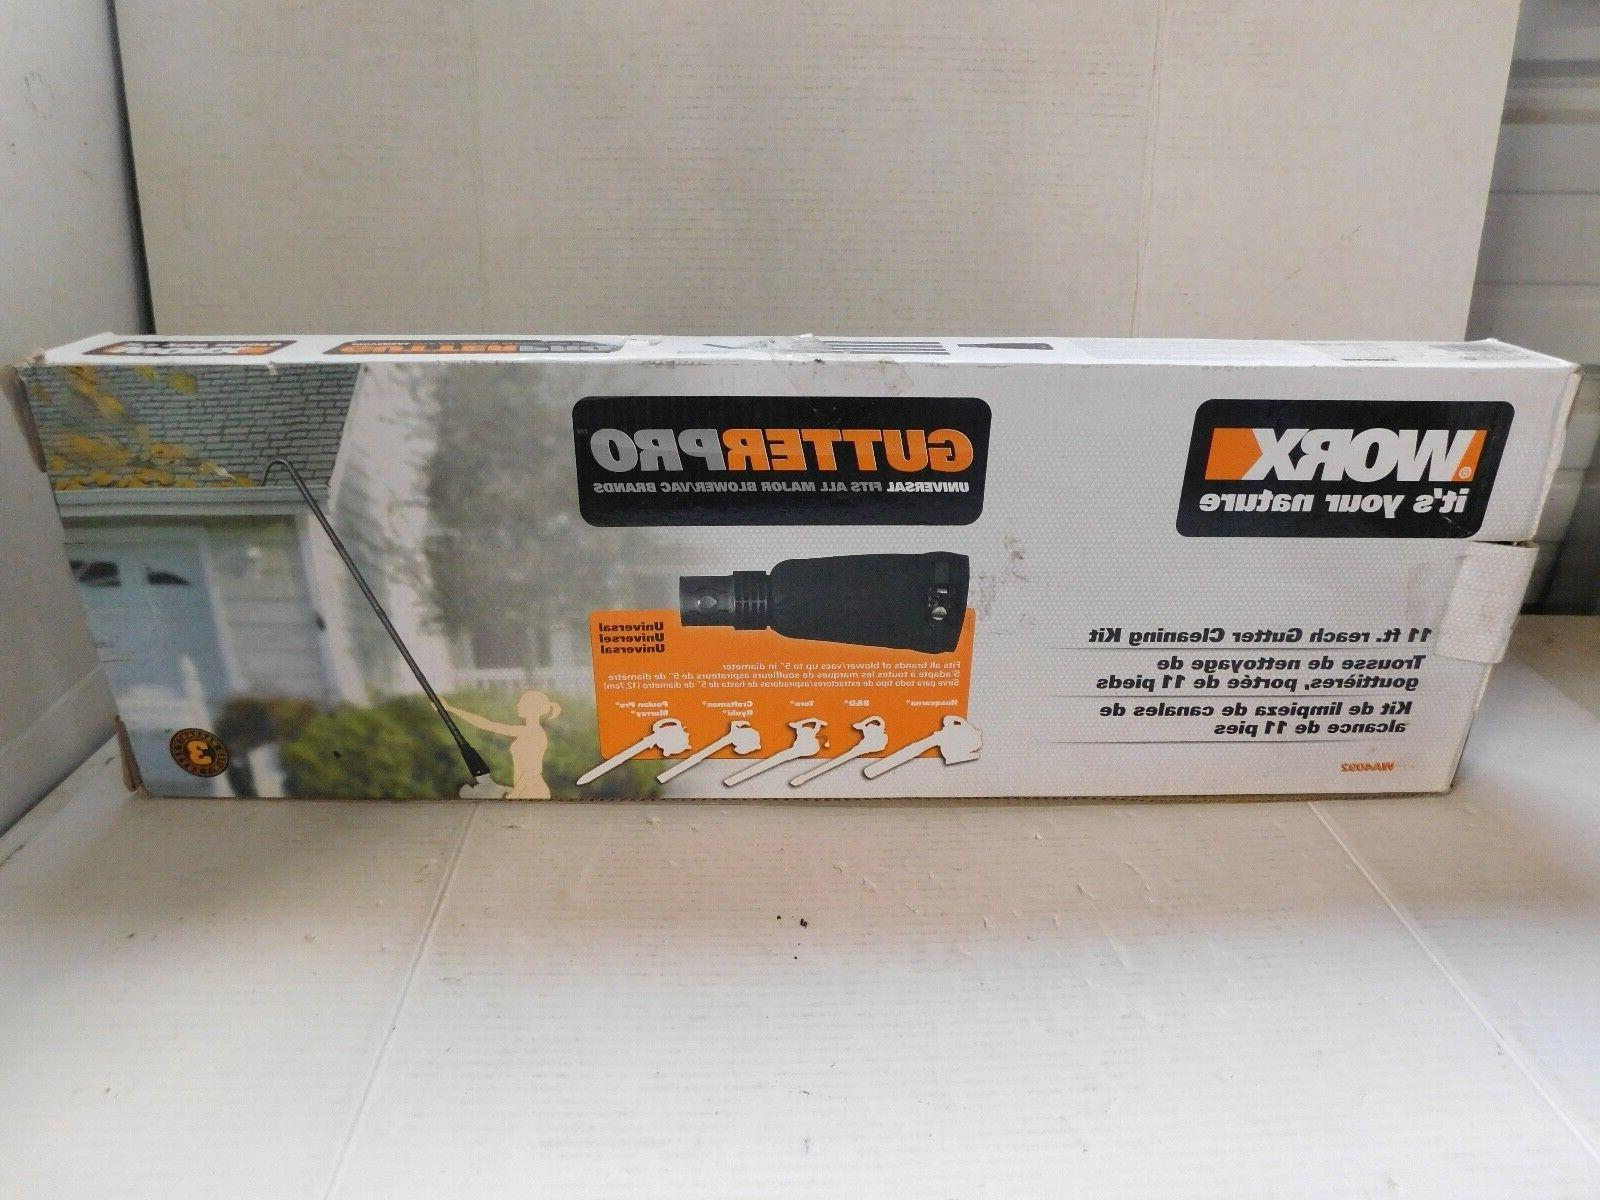 WORX Gutter Cleaning Kit Blowers